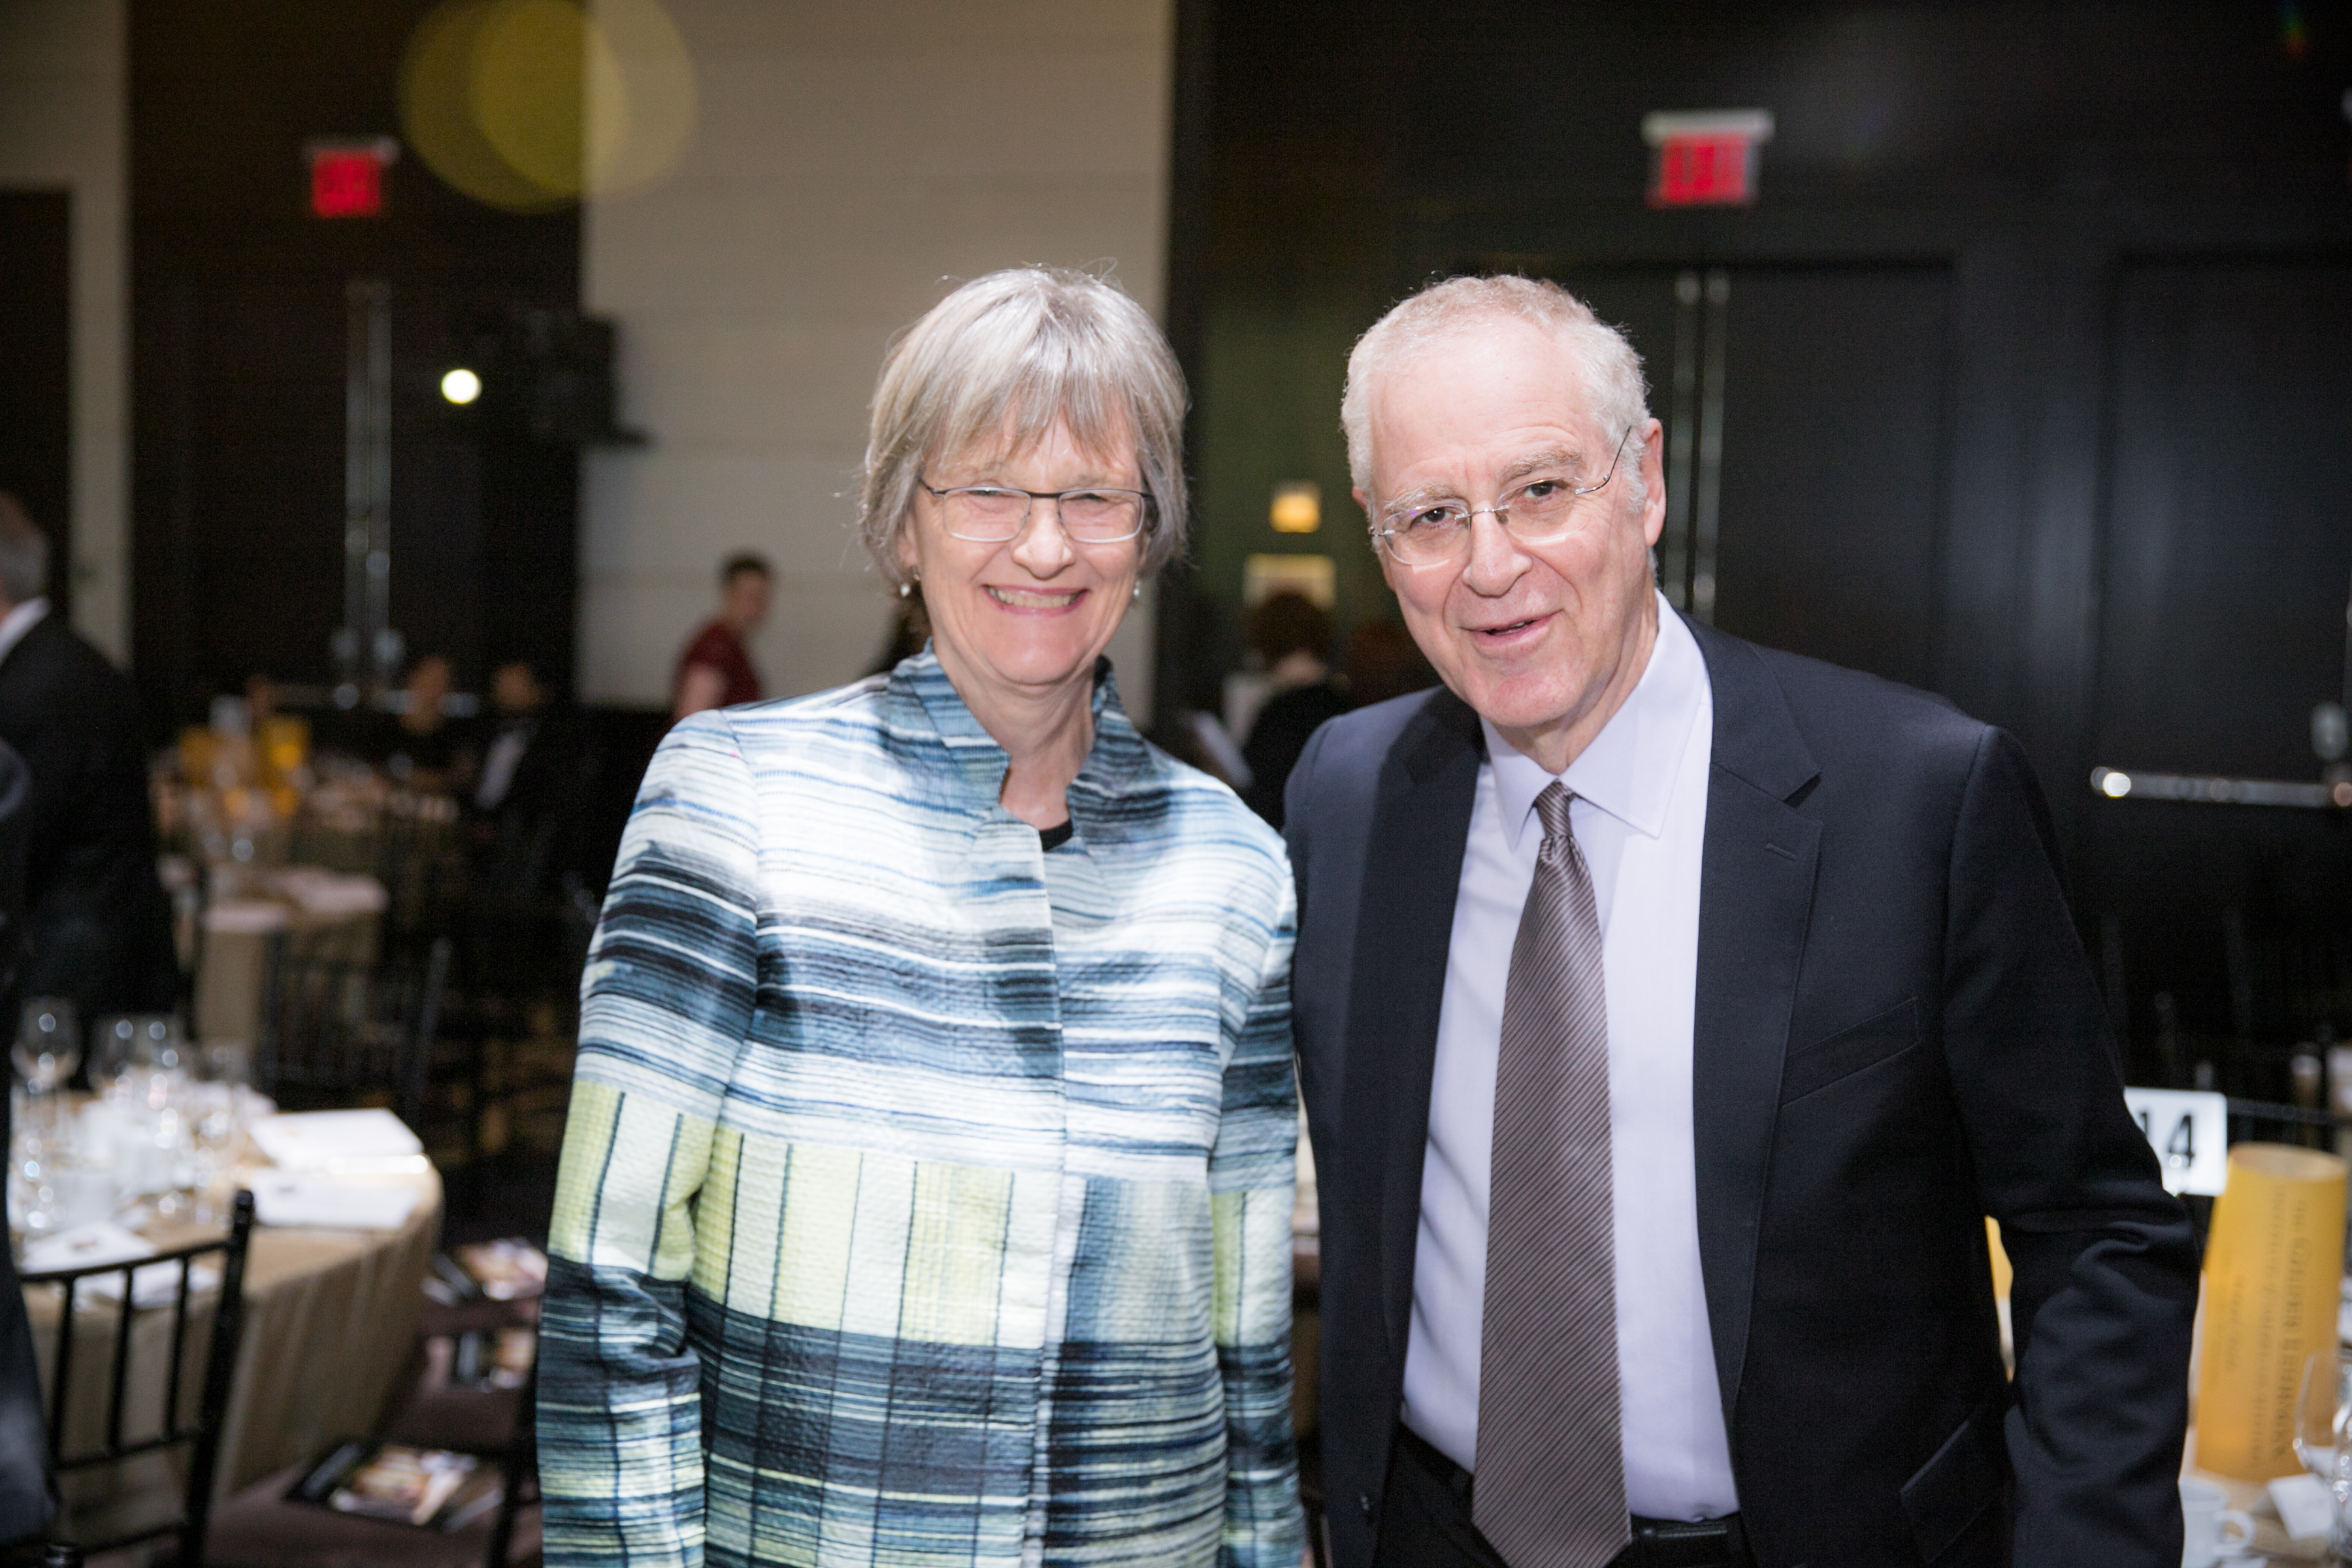 Gala Honorees Drew Gilpin Faust and Ron Chernow